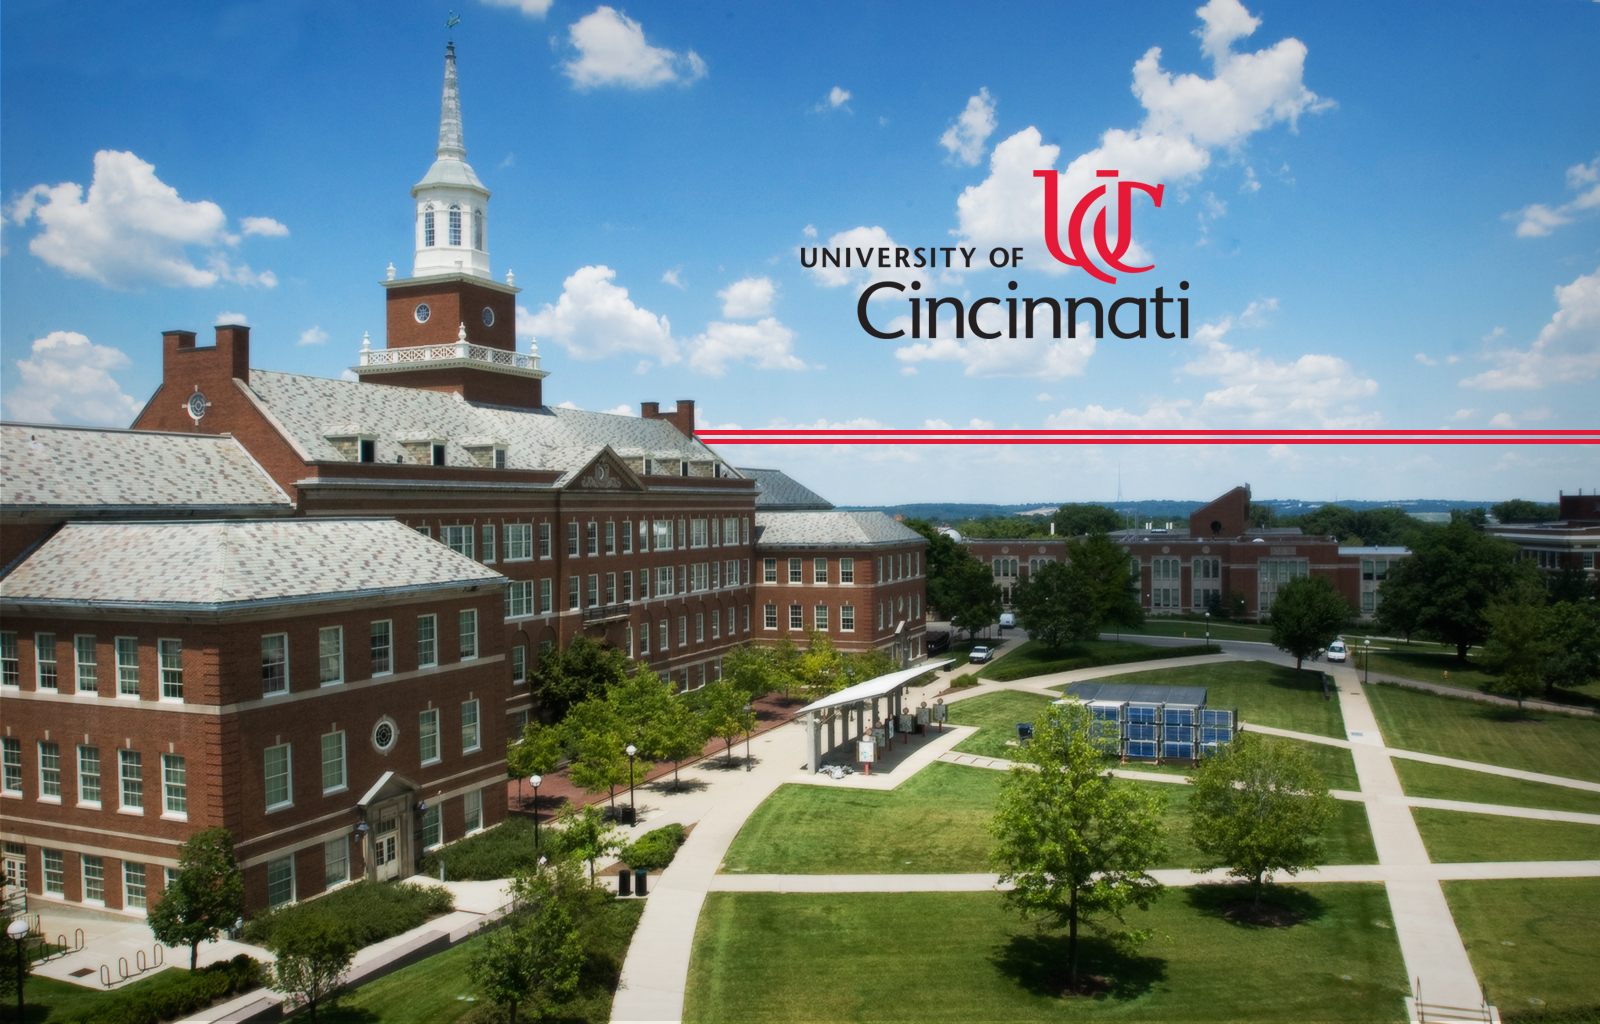 University Of Cincinnati Classroom Design Guide ~ Reasons to skip class at university of cincinnati